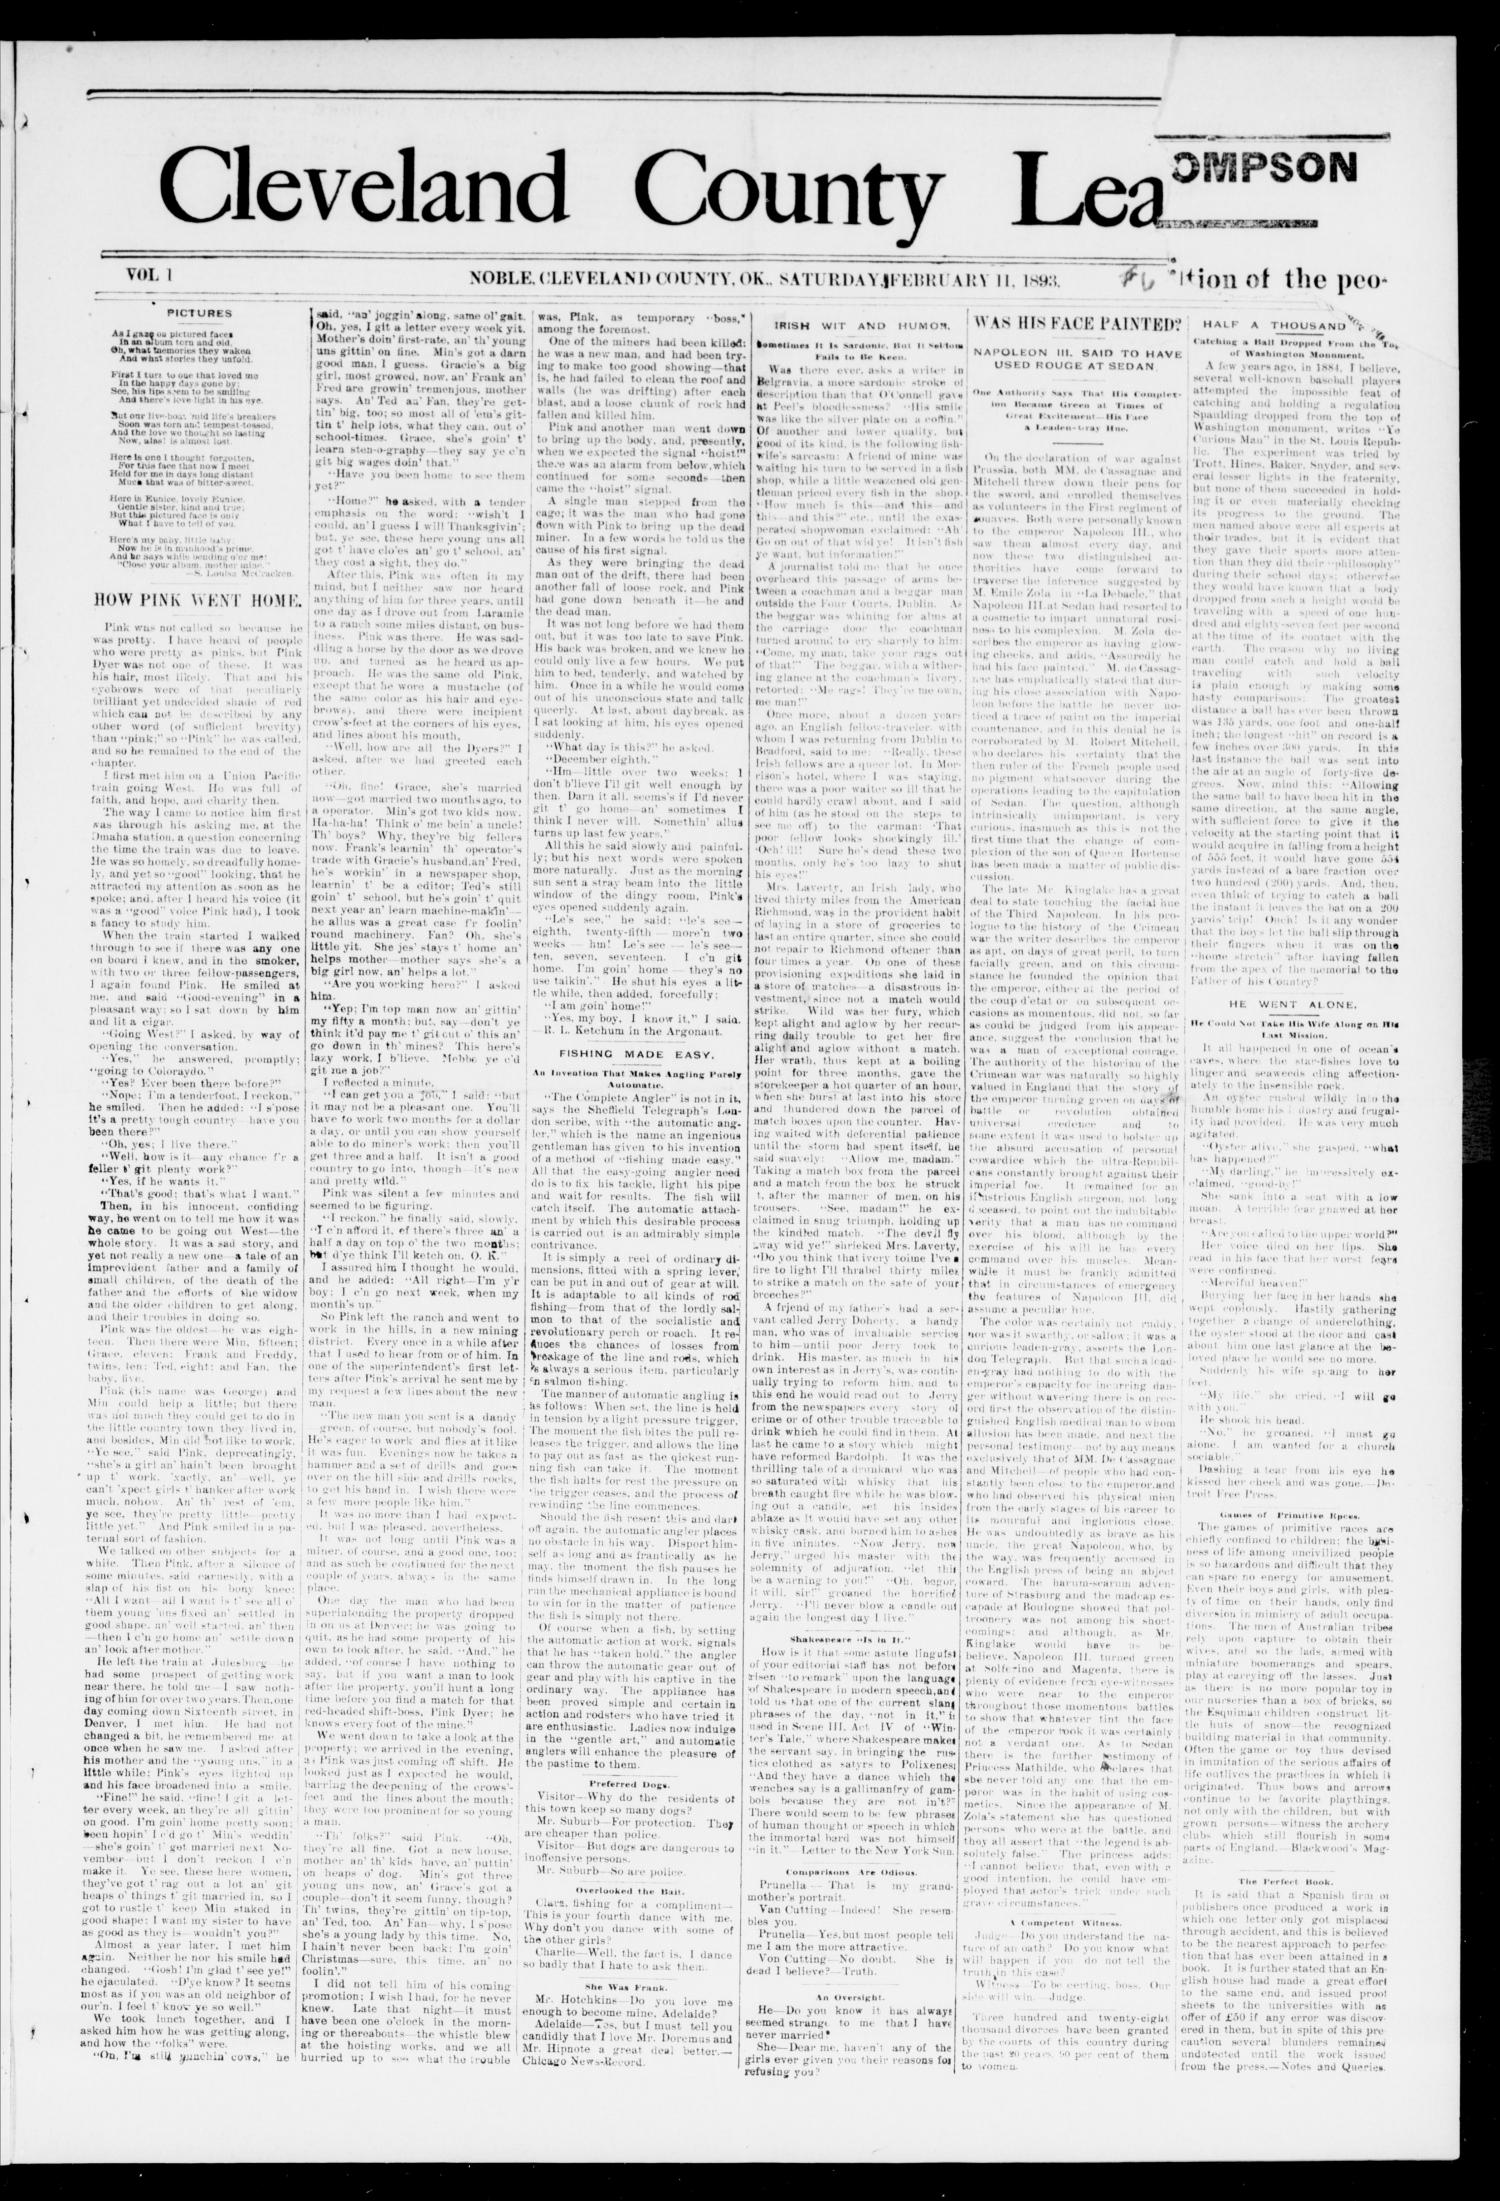 Cleveland County Leader. (Noble, Okla.), Vol. 1, No. 5, Ed. 1 Saturday, February 4, 1893                                                                                                      [Sequence #]: 1 of 8